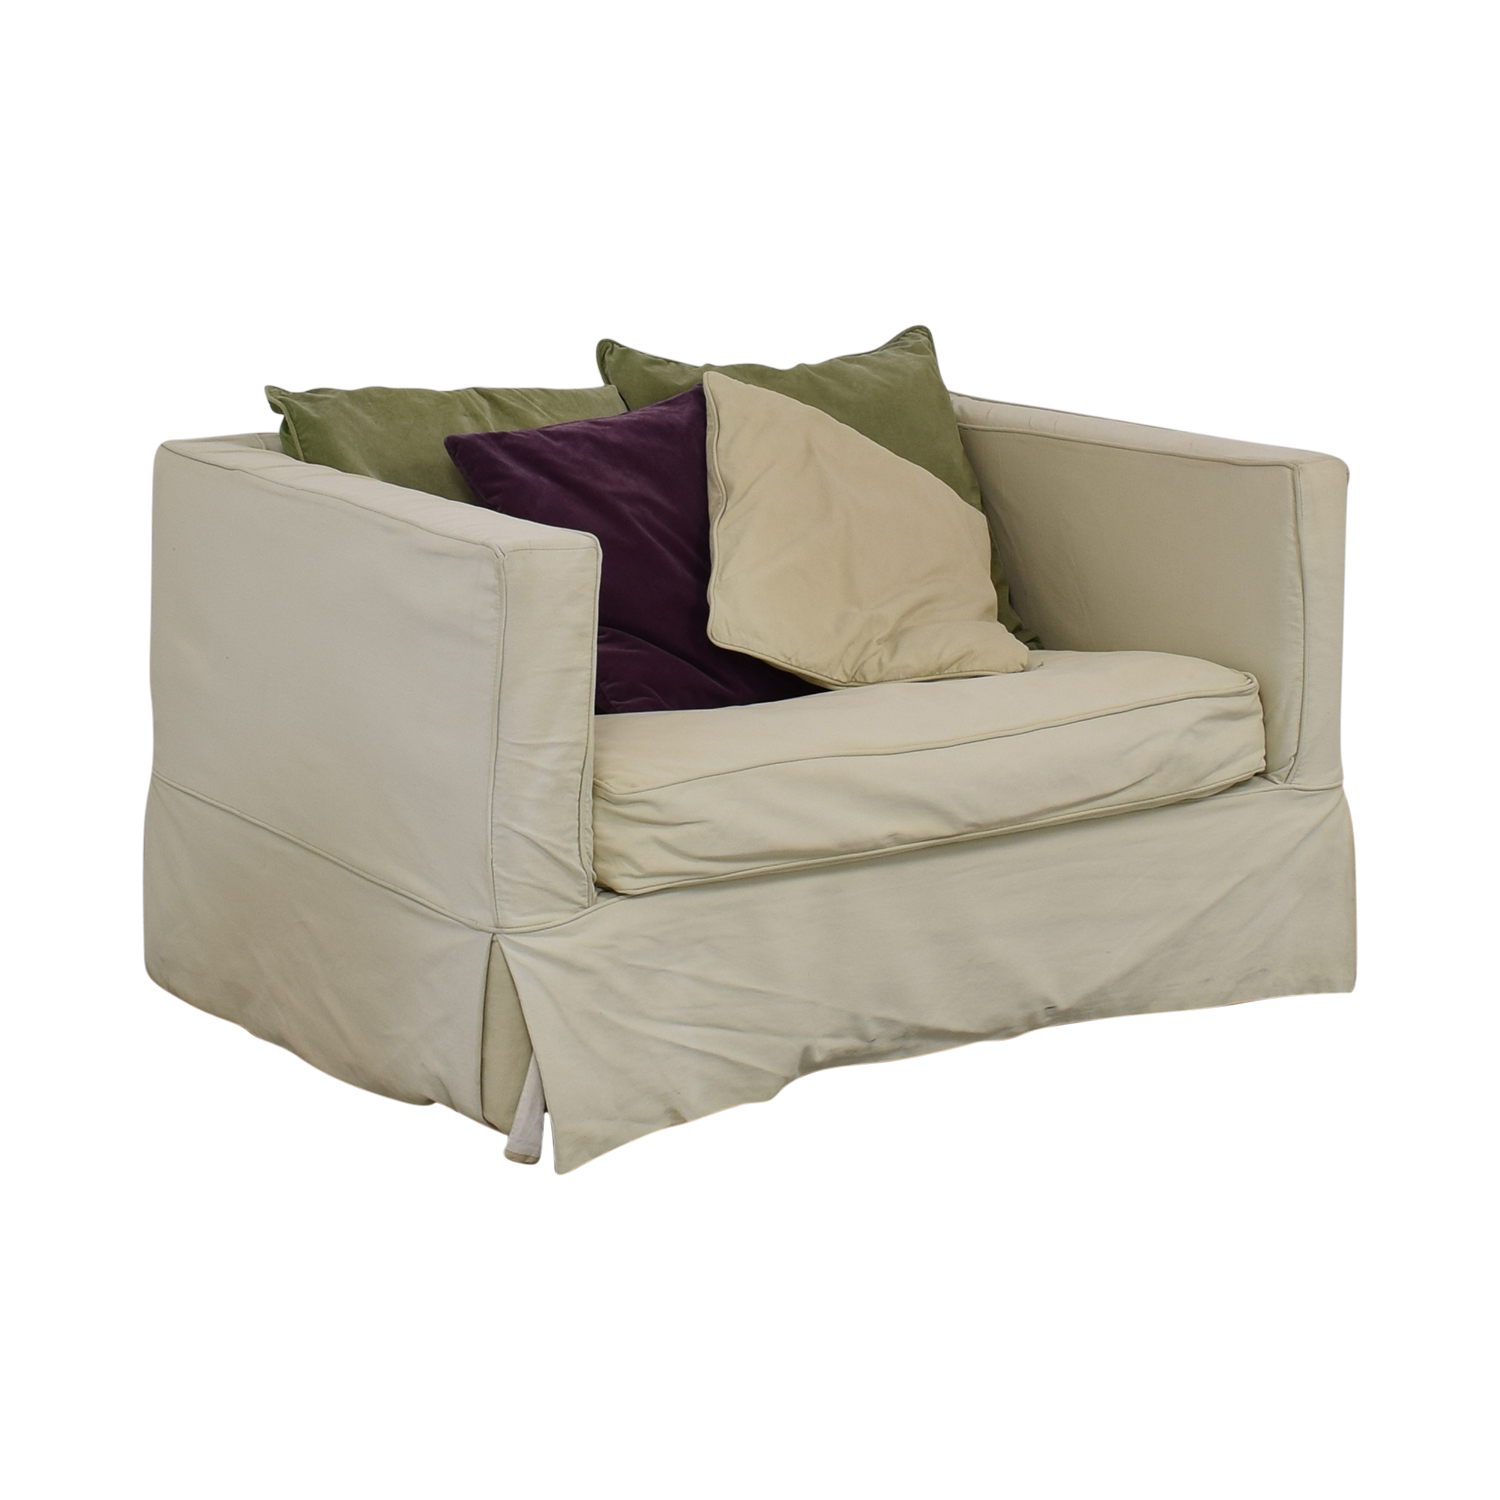 Crate & Barrel Crate & Barrel Beige Single Cushion Loveseat with Twin Pull Out Bed for sale